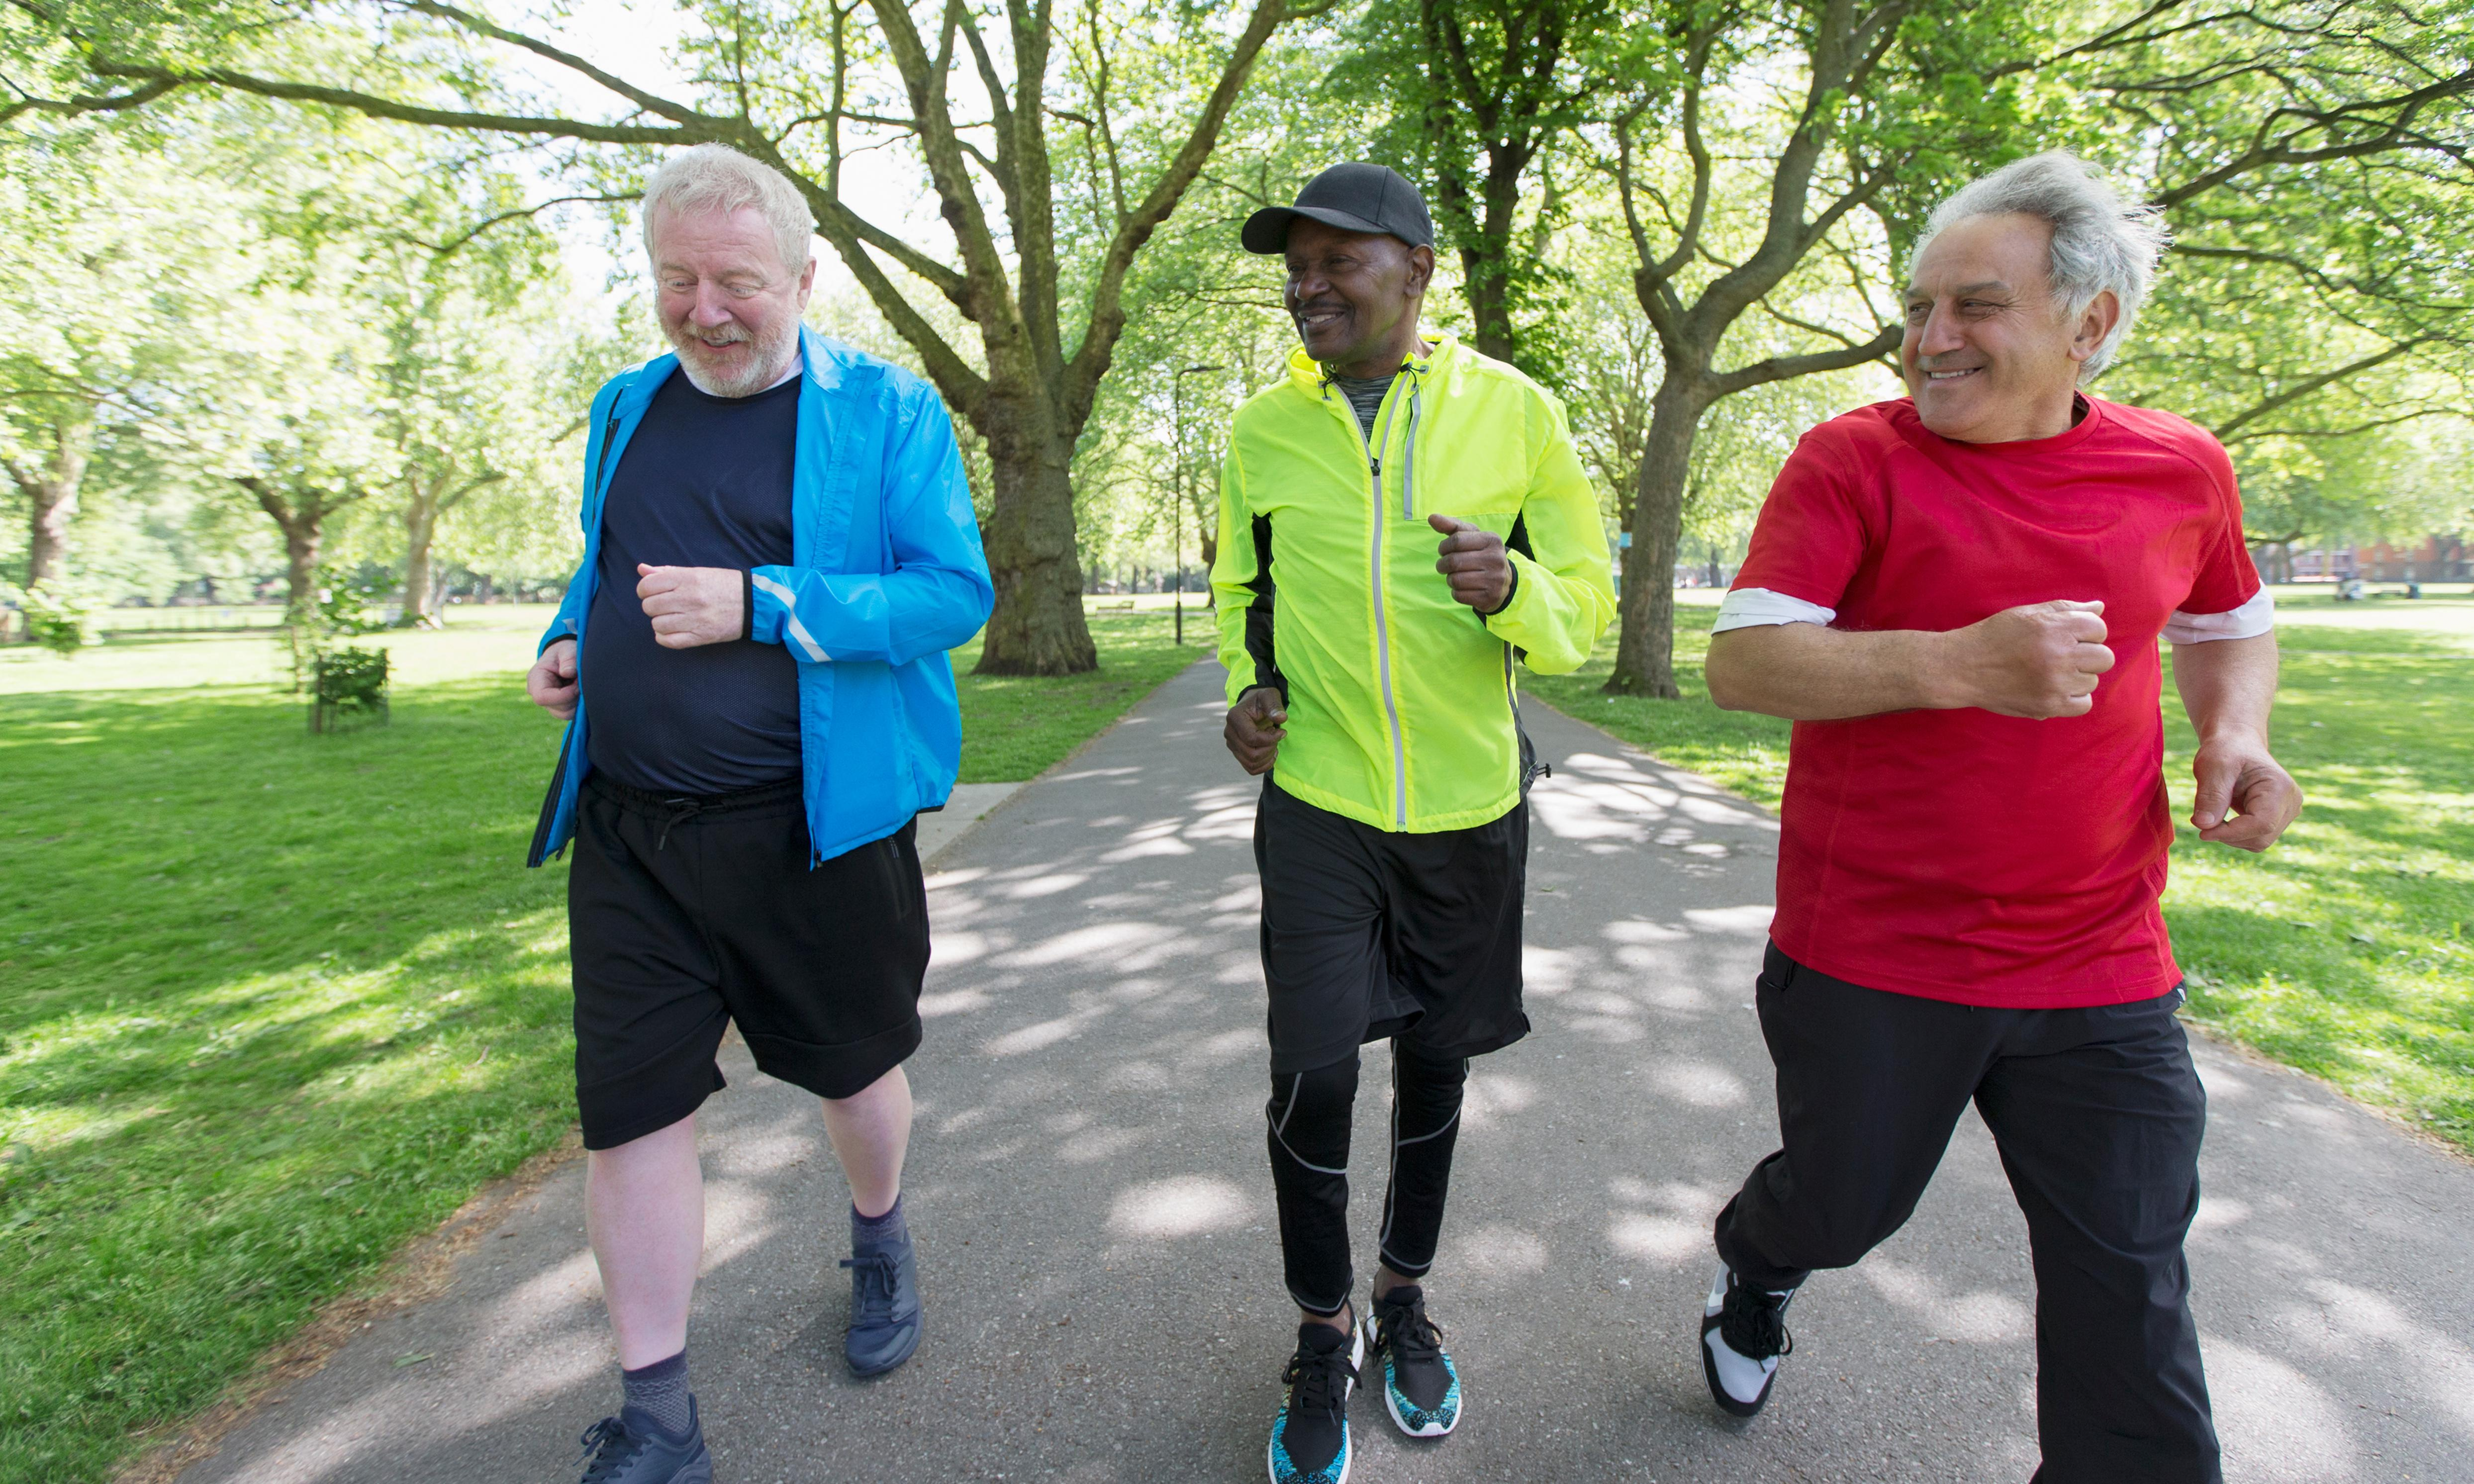 'If you can run, you can do anything': why over 65s are at park